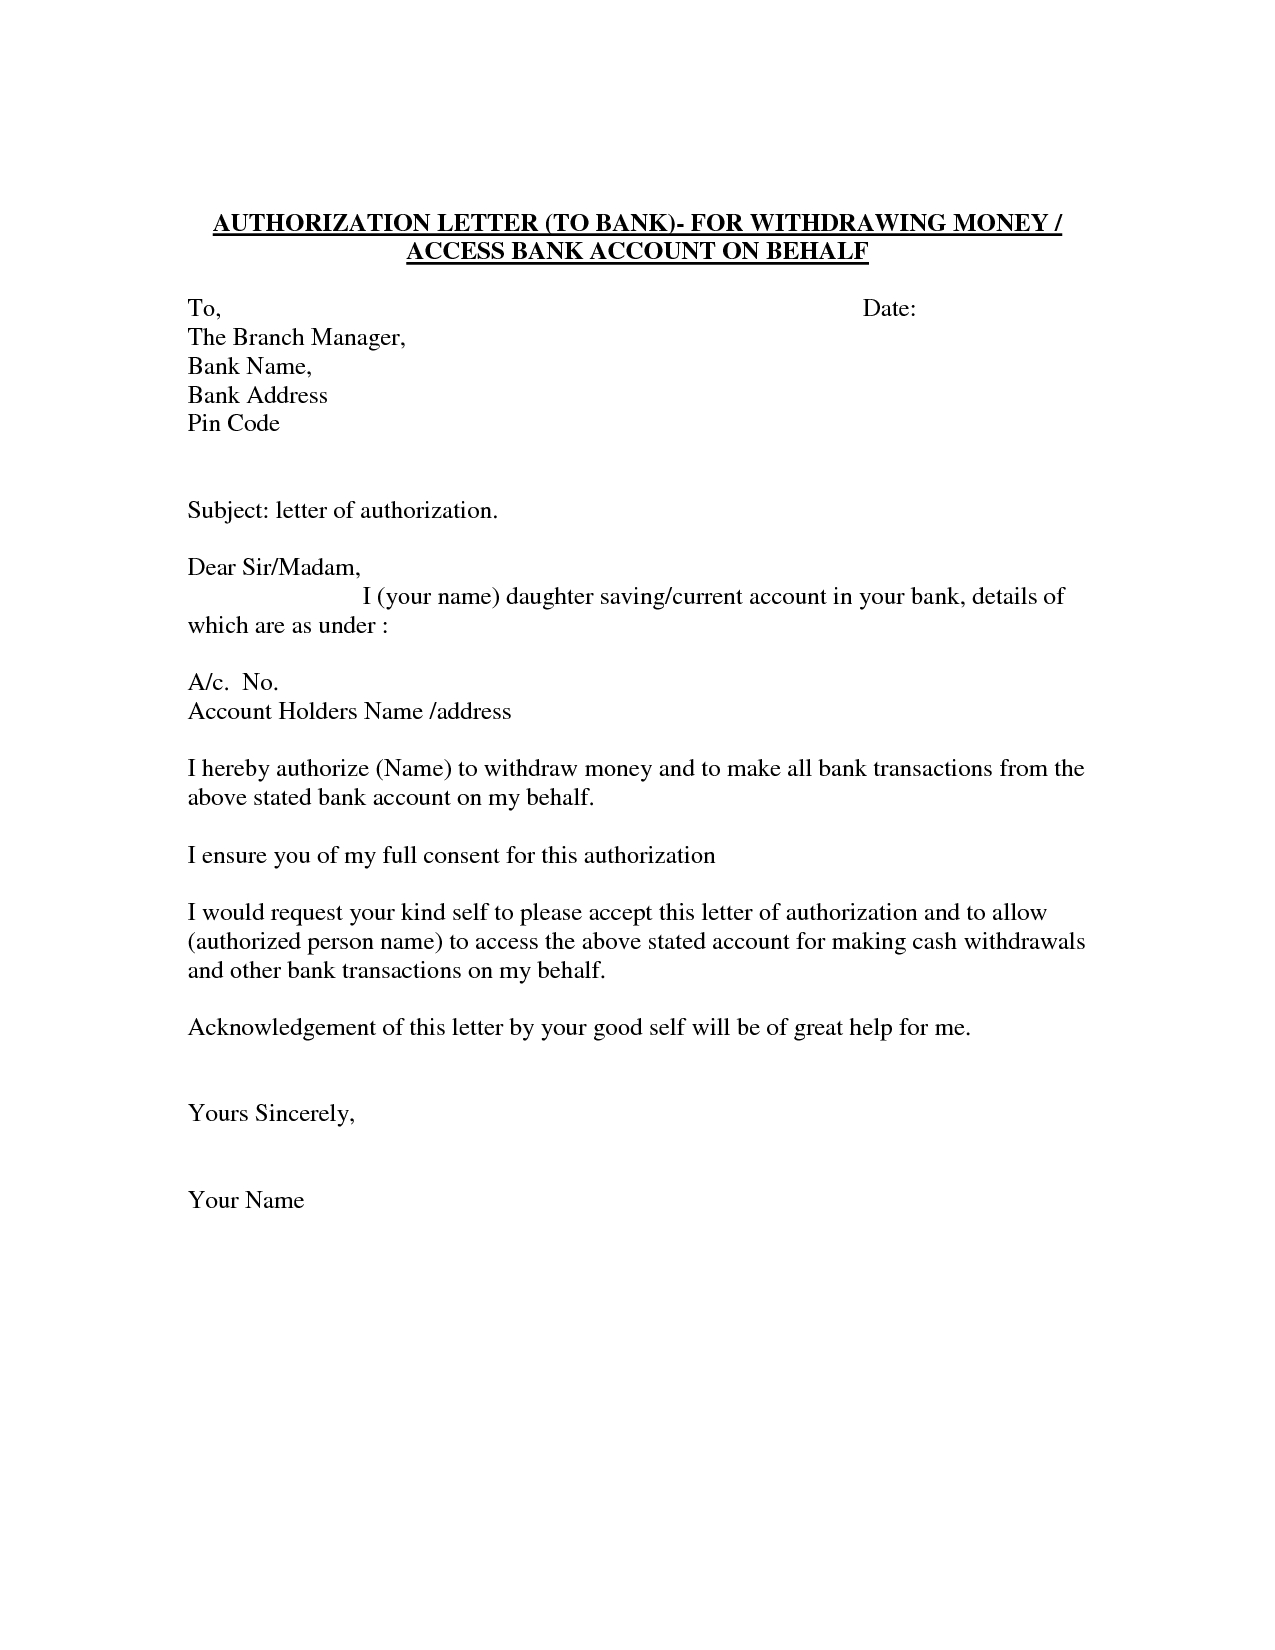 Business Demand Letter Template - Authorization Letter Template Best Car Galleryformal Letter